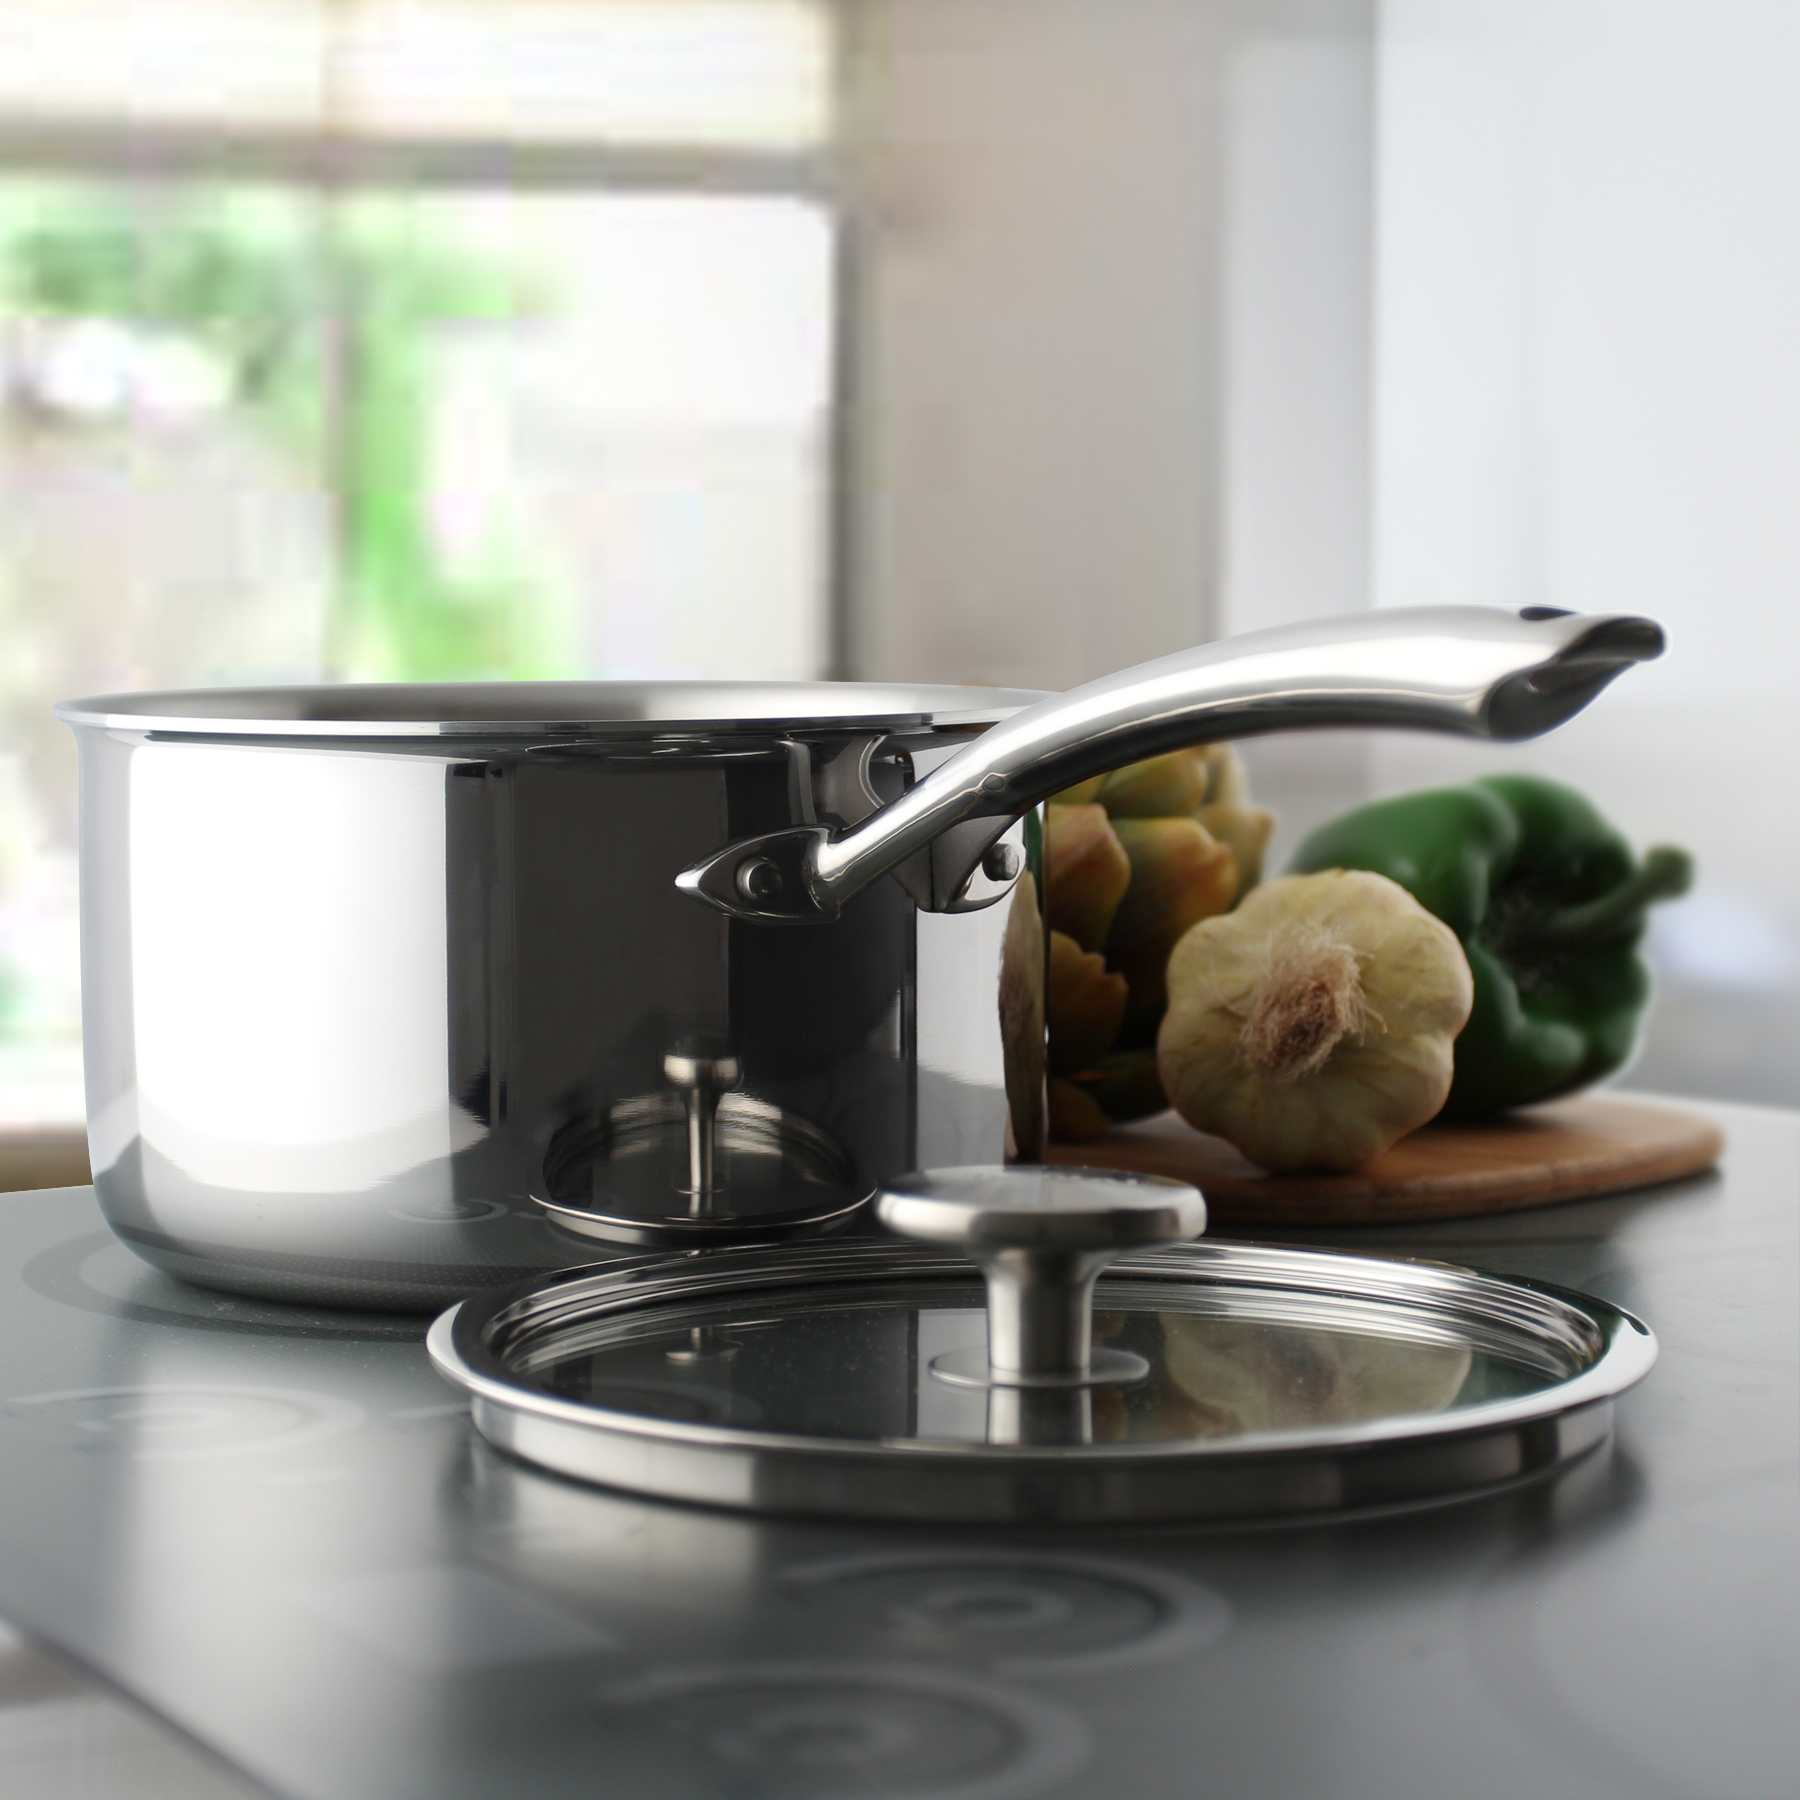 Chantal's top of the line!  This world-class cookware features bonded, multi-ply, construction that transfers heat easily and efficiently